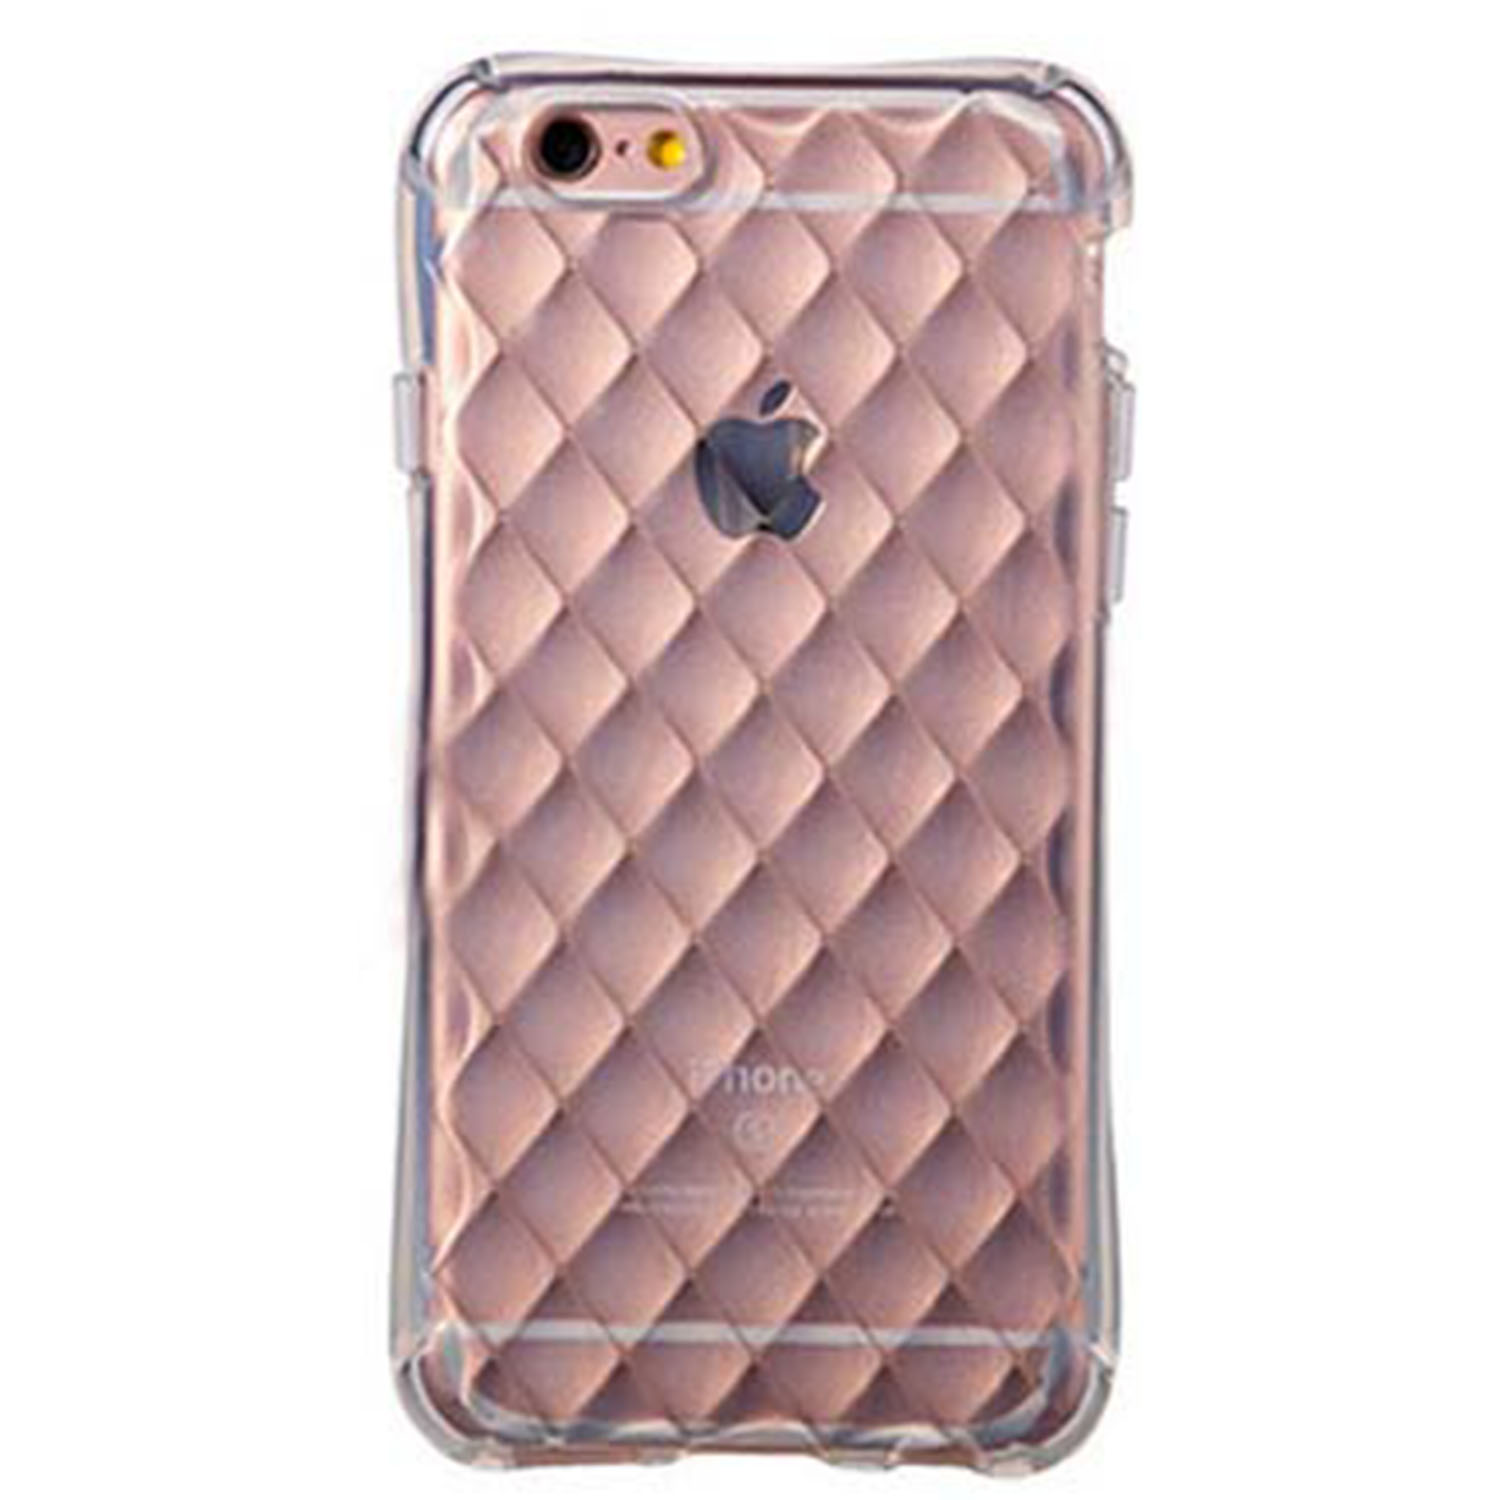 Kritzel Case Collection für iPhone 6 / 6s - #348